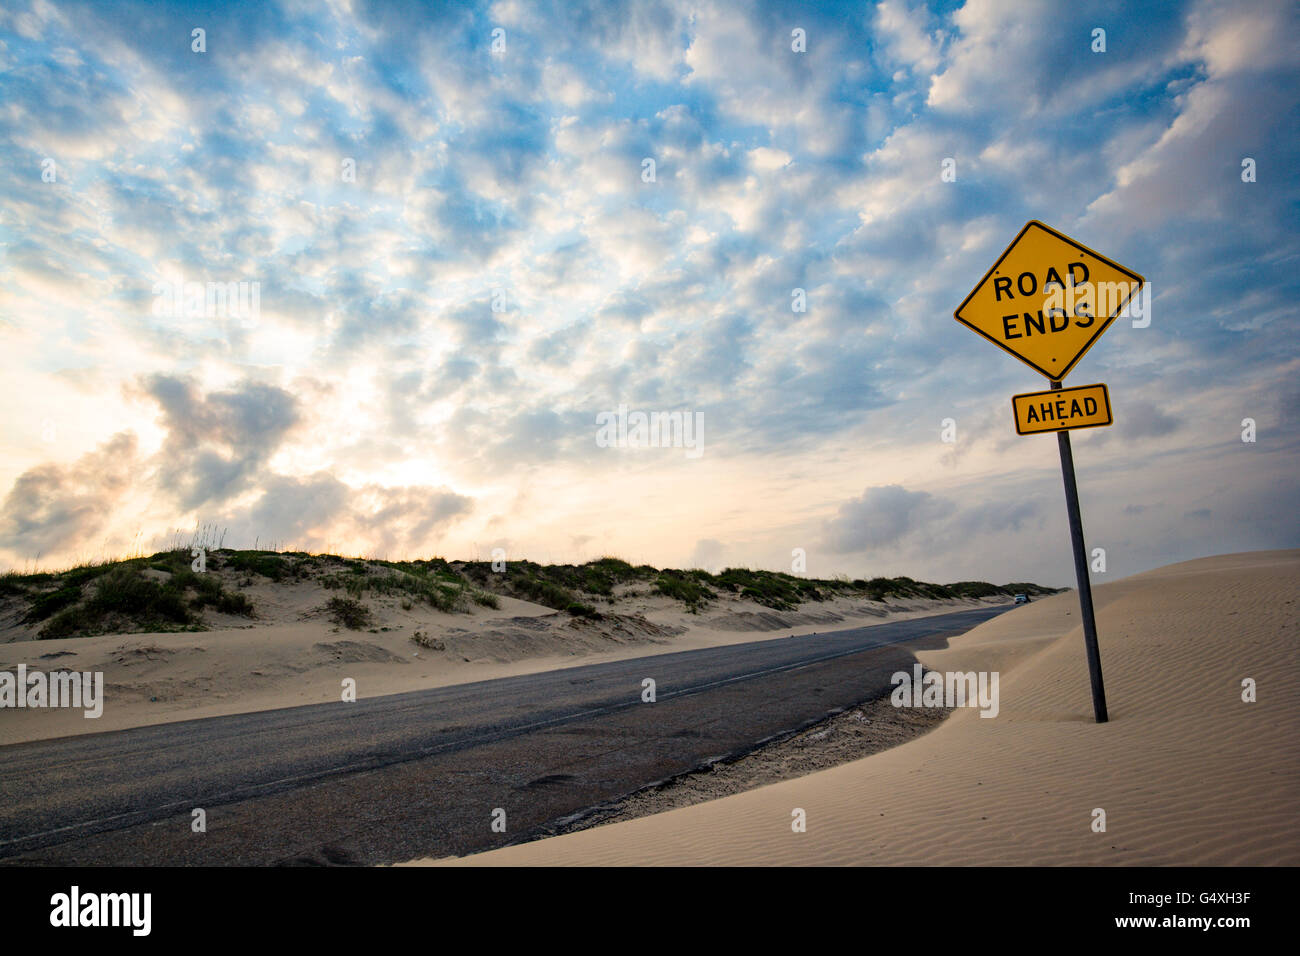 End of the Road - South Padre Island's Park Road 100 - Texas, USA - Stock Image